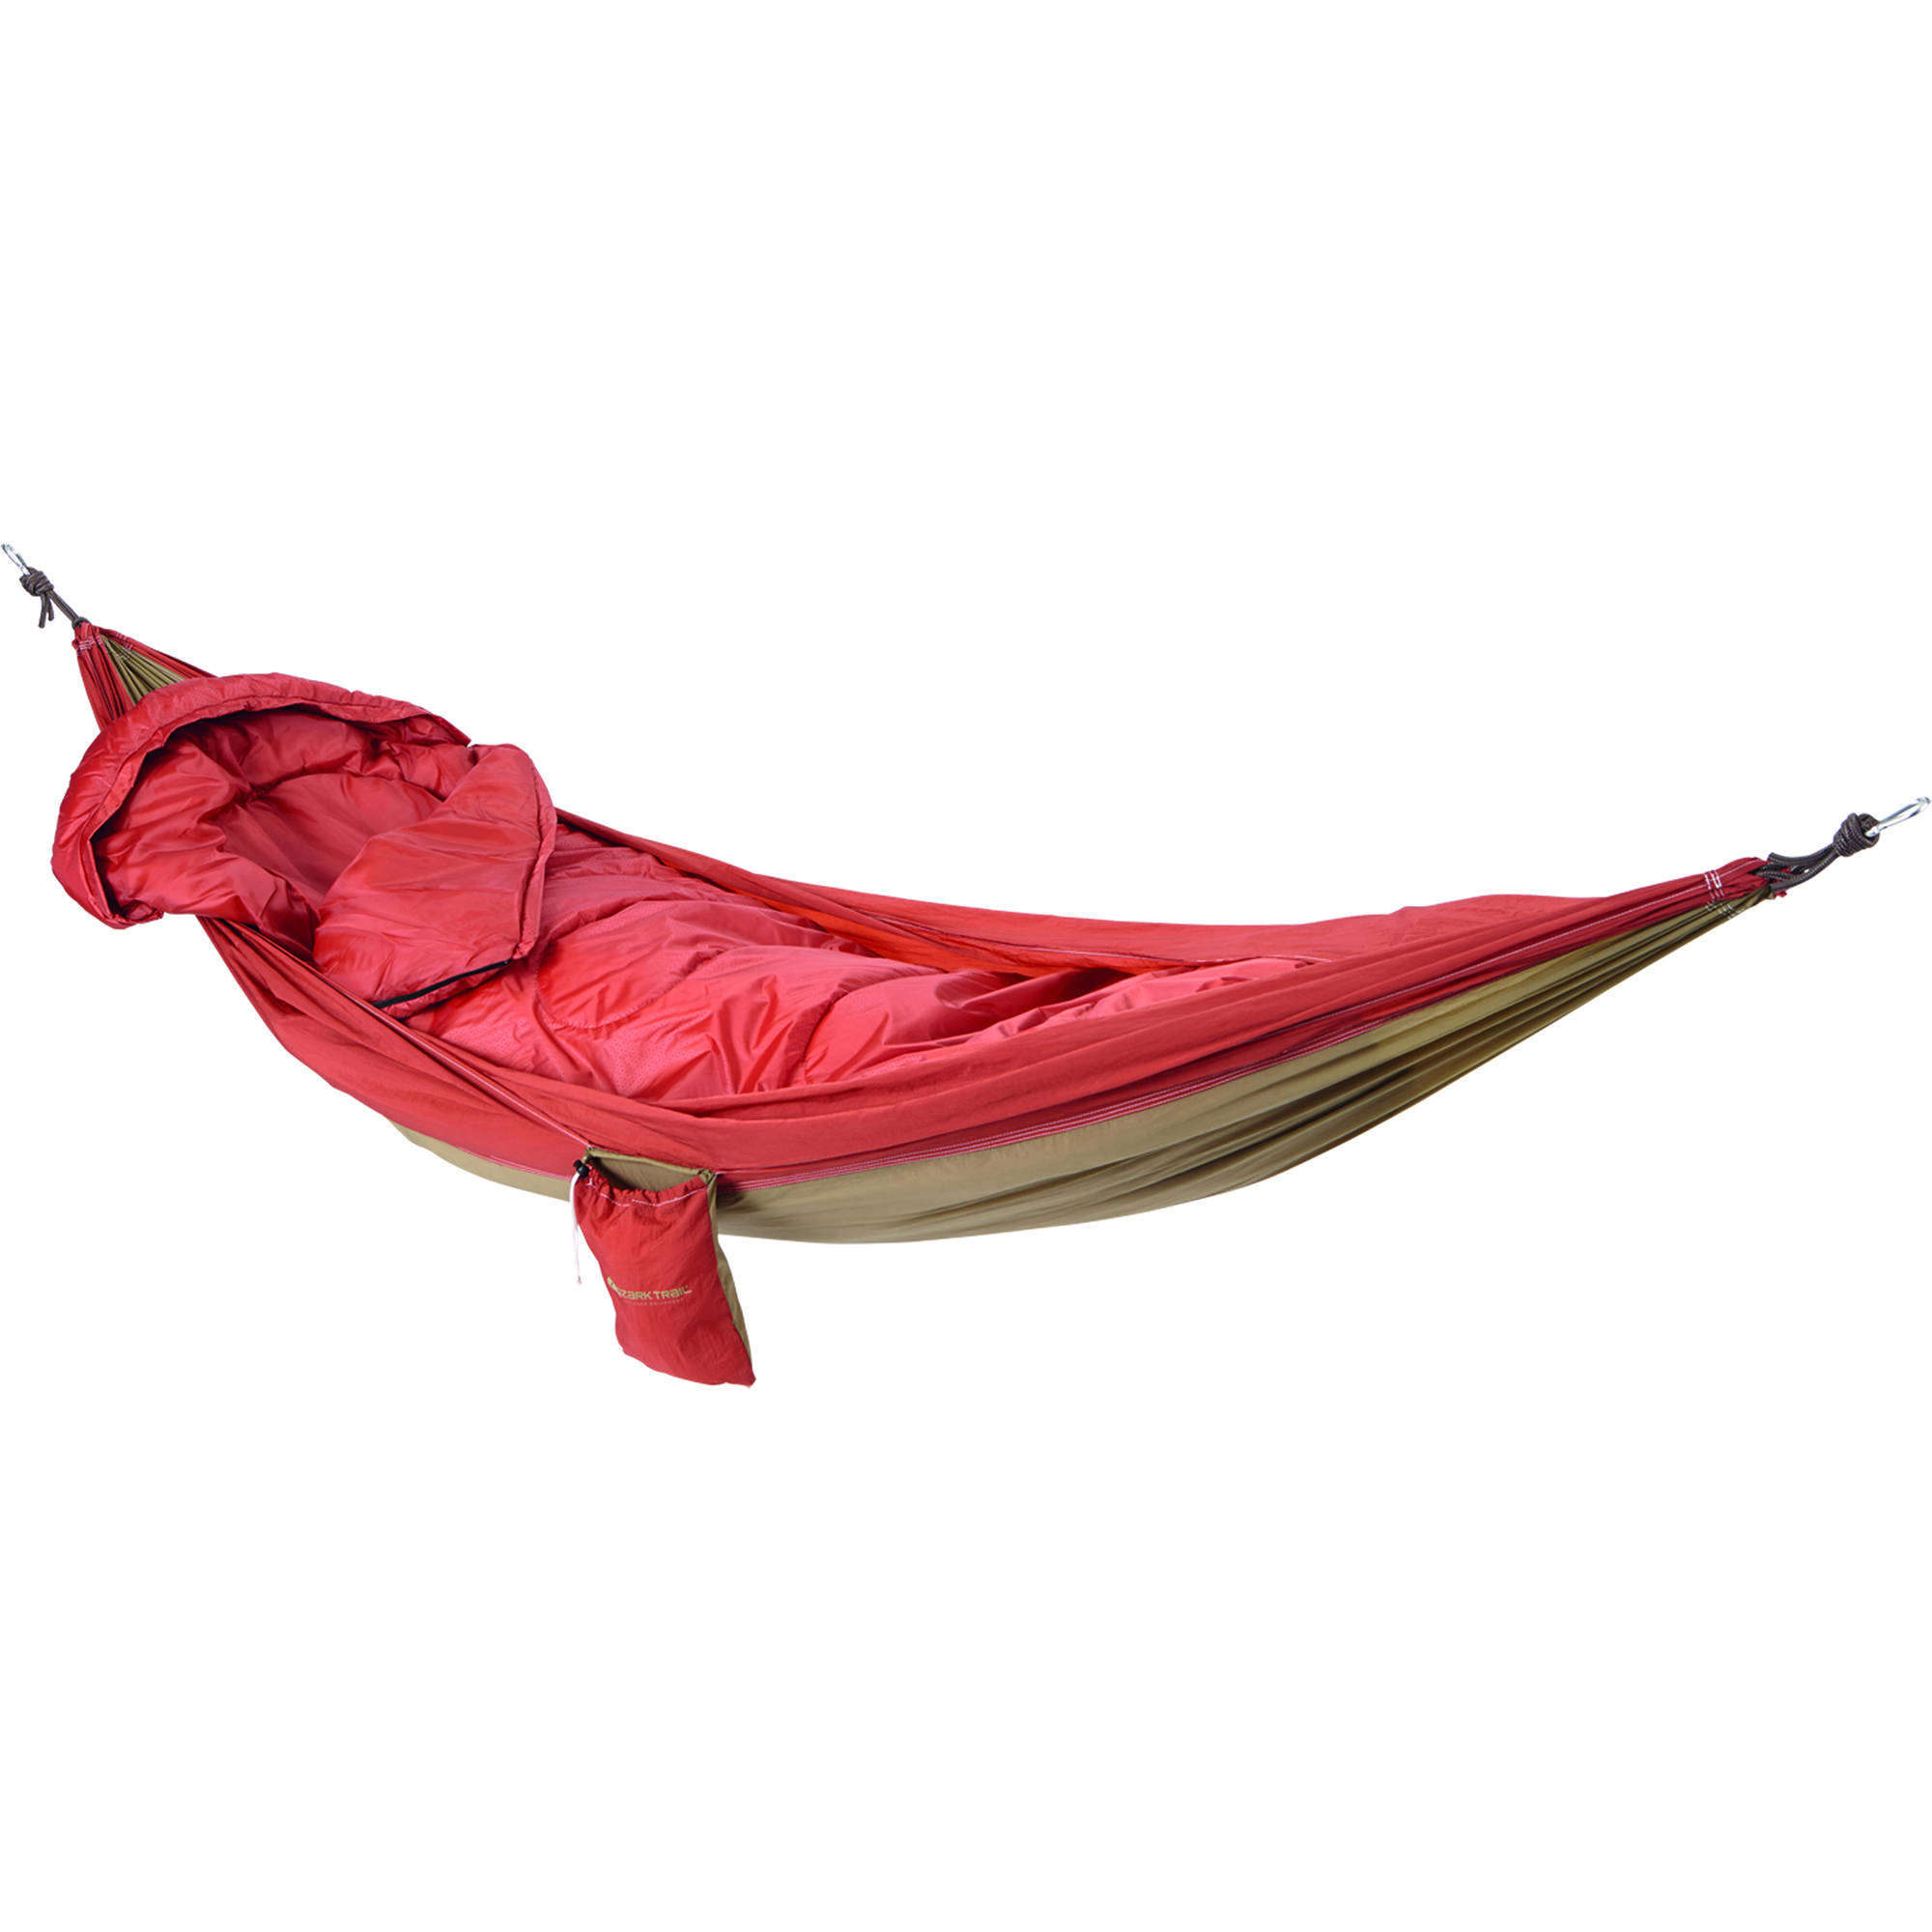 Ozark Trail 2 In 1 Hammock With Removable Sleeping Bag